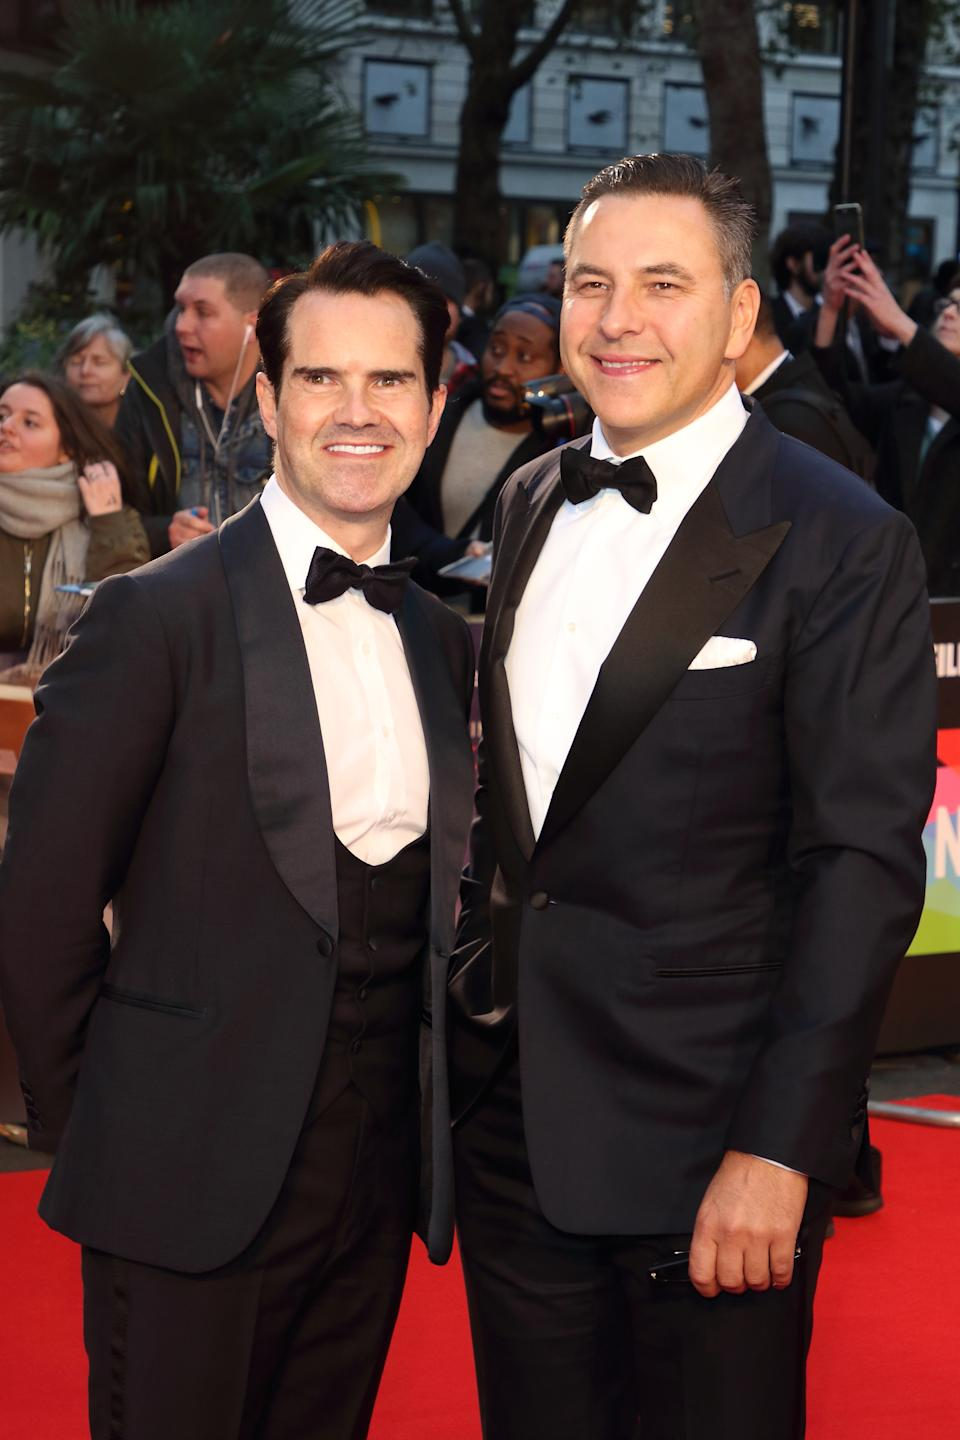 LONDON, UNITED KINGDOM - 2019/10/13: Jimmy Carr and David Walliams attend The Irishman International Premiere and closing Gala during the 63rd BFI London Film Festival at the Odeon Luxe Leicester Square in London. (Photo by Keith Mayhew/SOPA Images/LightRocket via Getty Images)